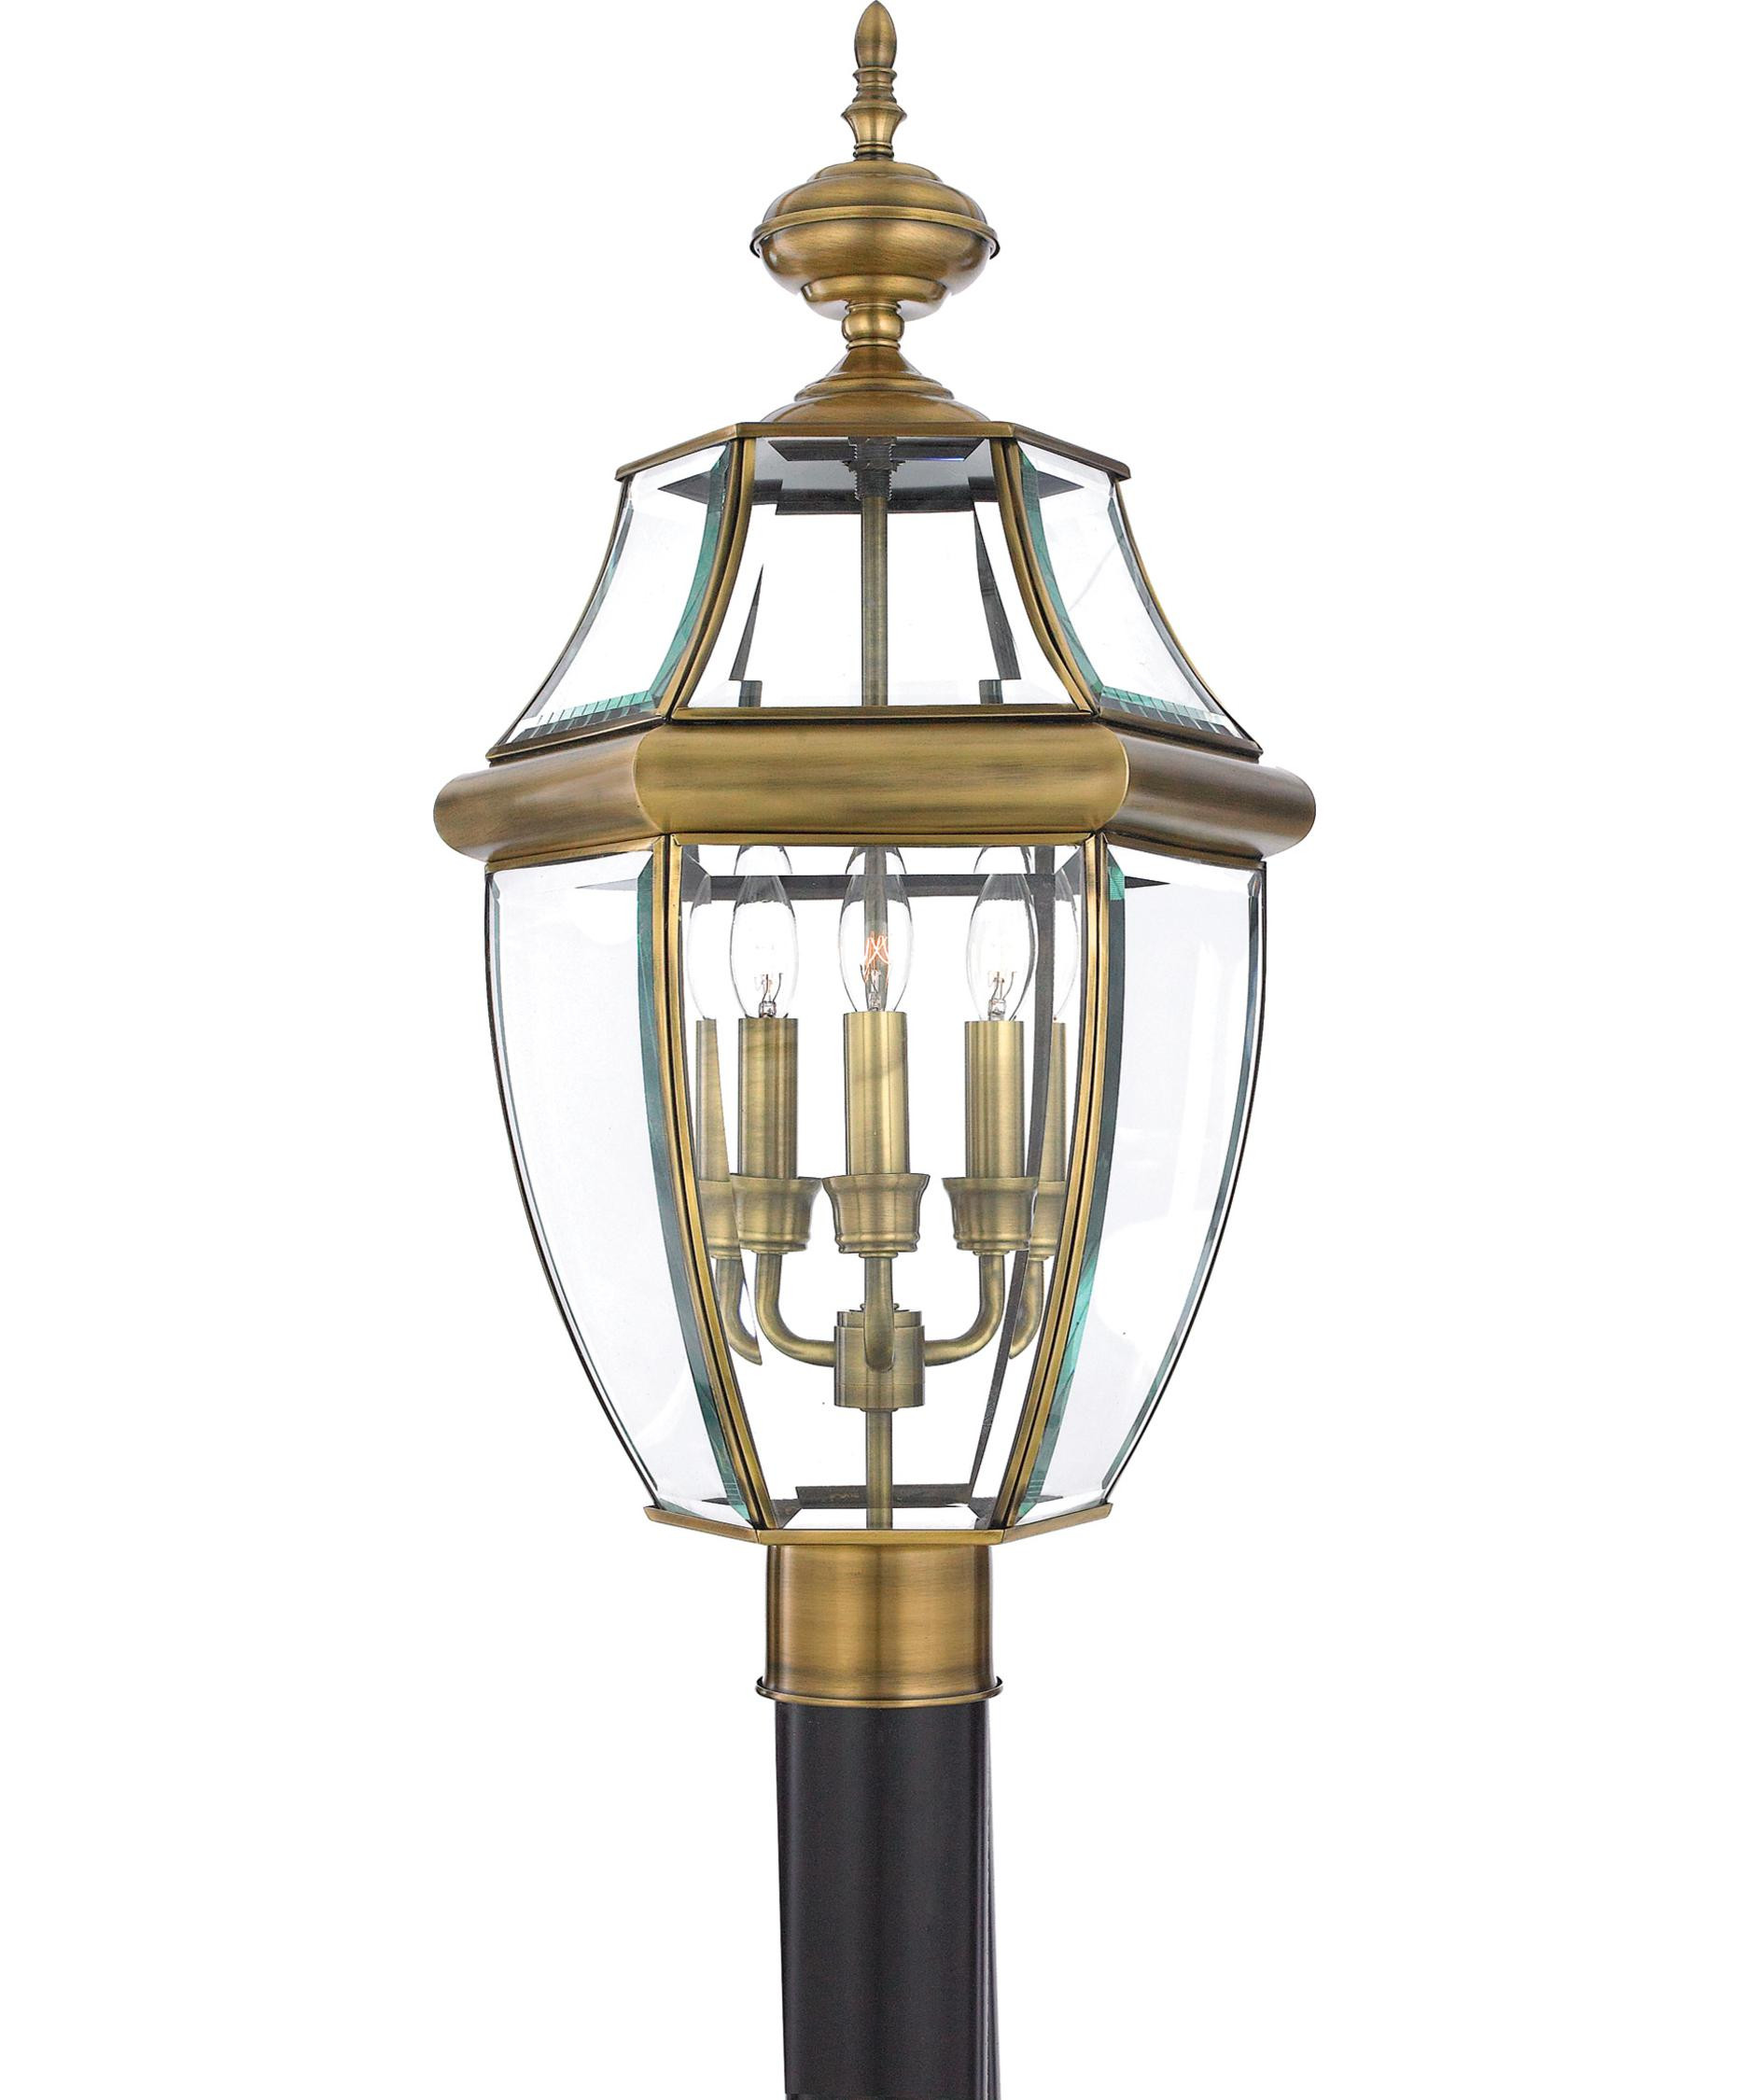 Best ideas about Lamp Post Lights . Save or Pin Quoizel Newbury 3 Light Outdoor Post Lamp Now.